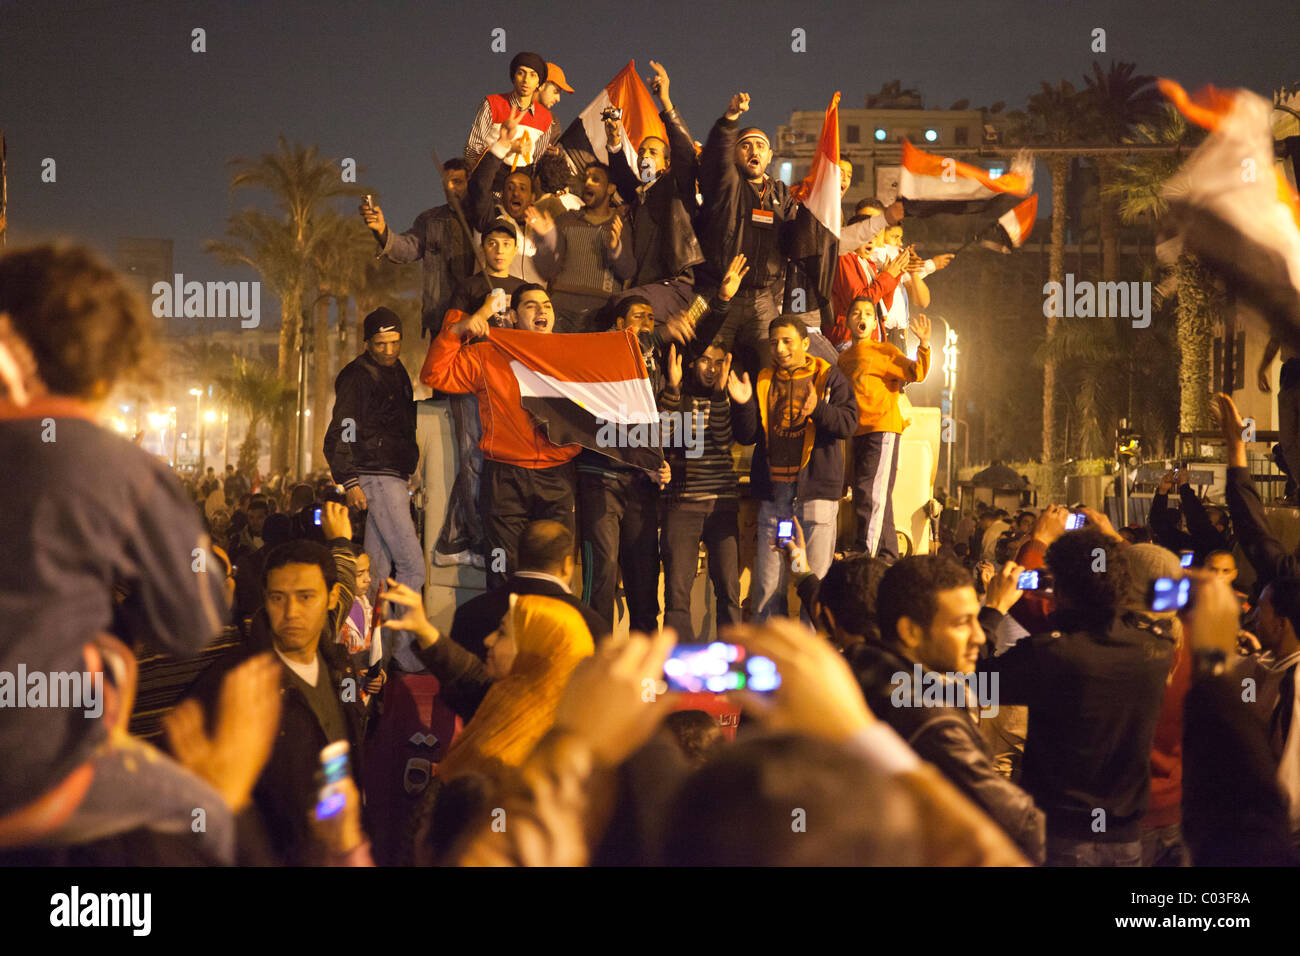 Egyptian demonstrators celebrating victory in the revolution at Tahrir on top of Army truck. - Stock Image